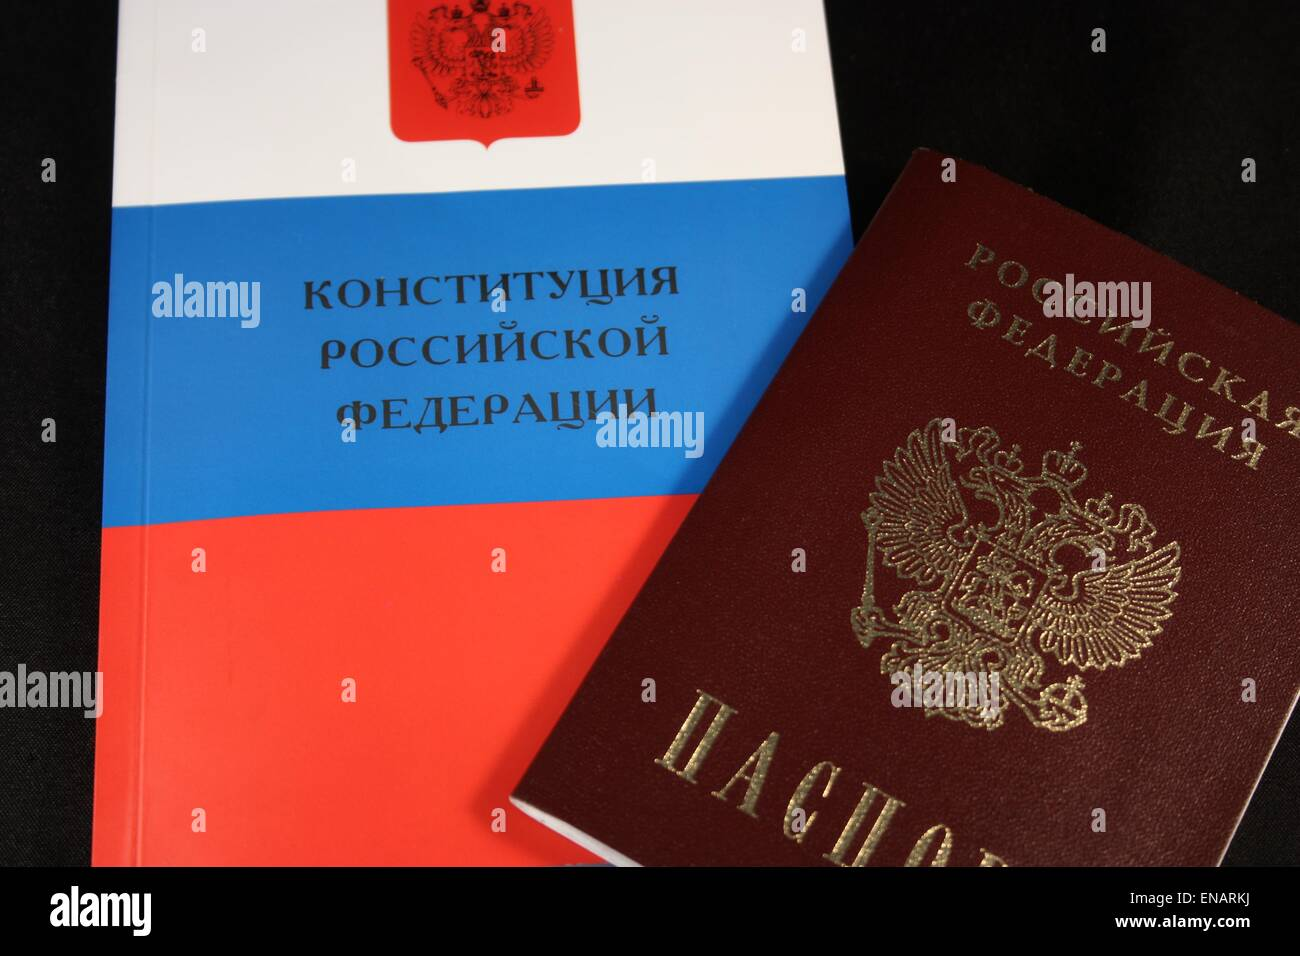 The Constitution and the passport. Russian Federation - Stock Image